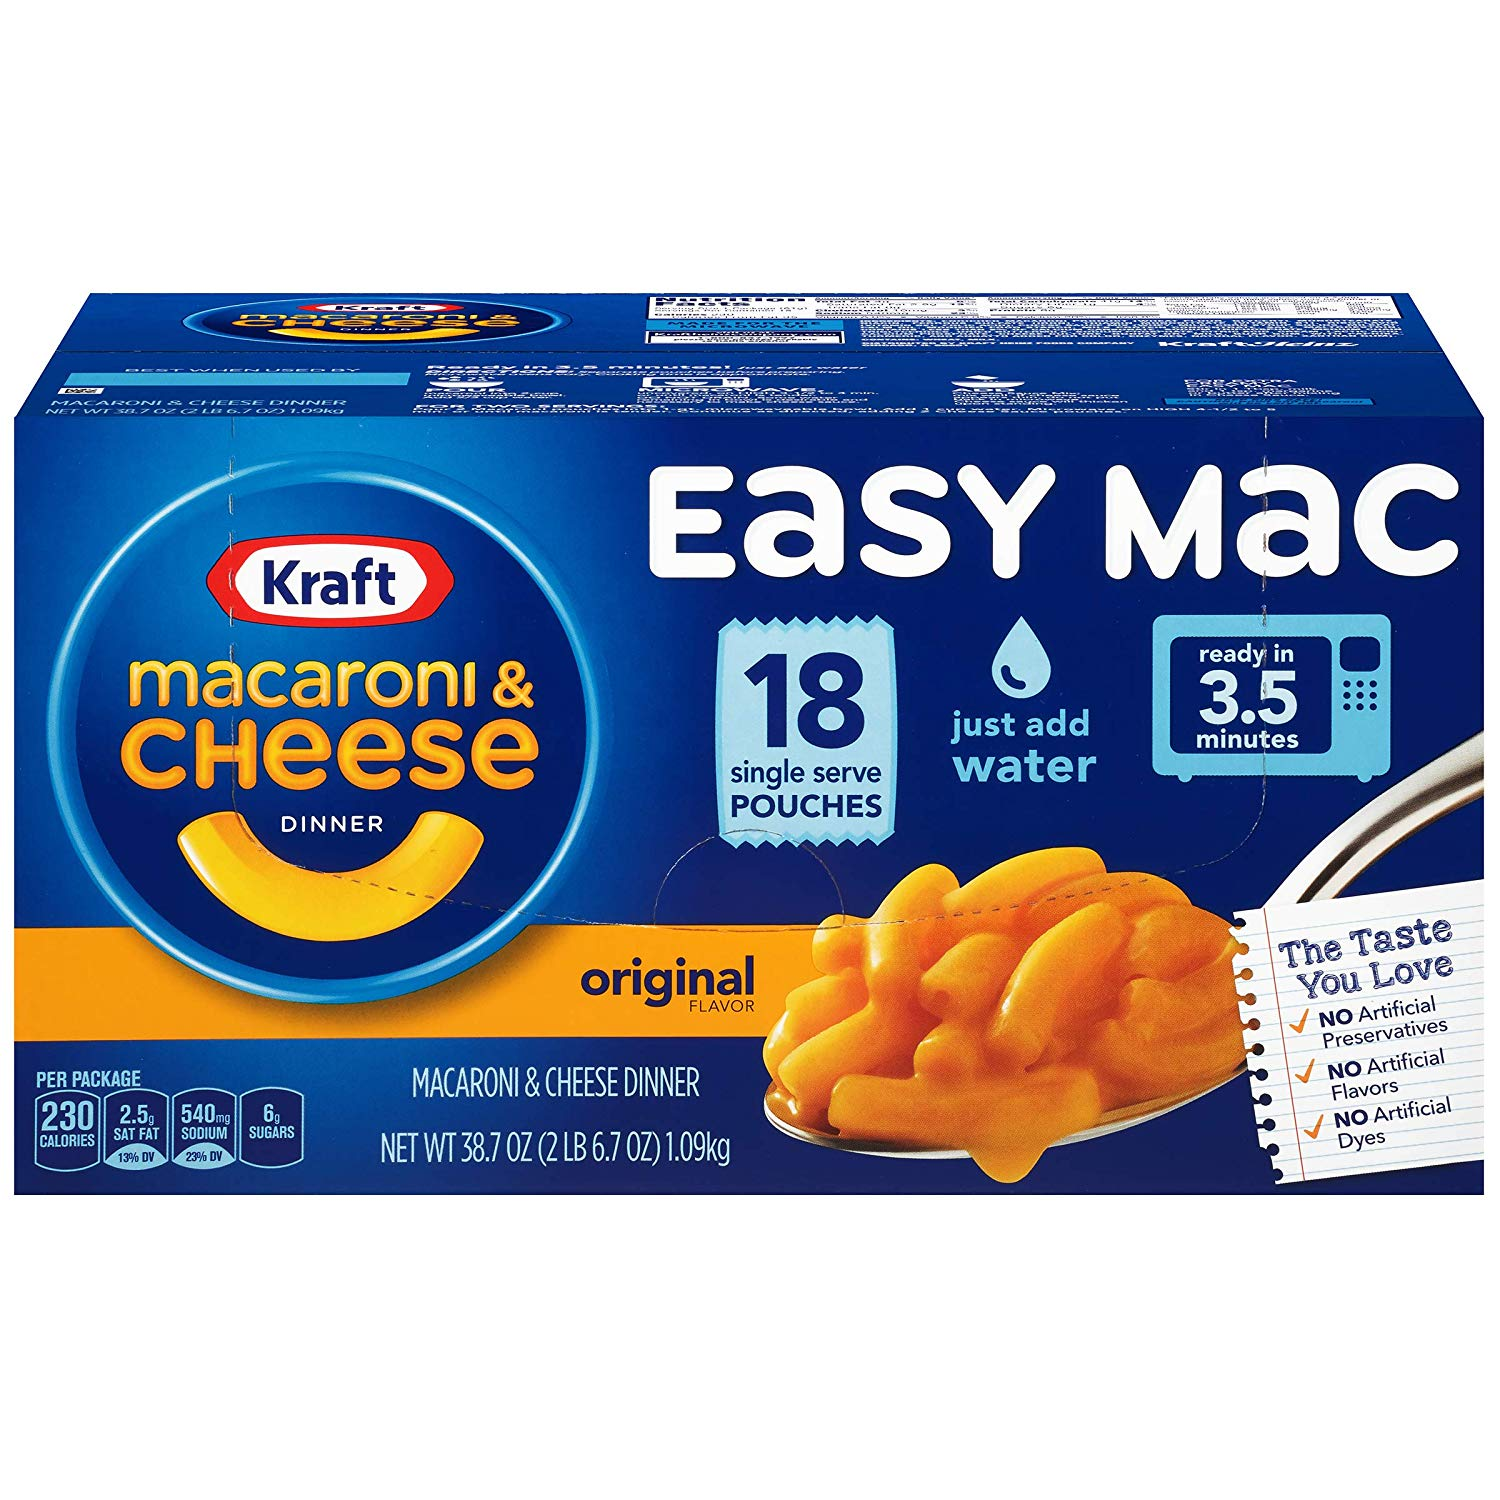 Kraft Easy Mac Original Flavor